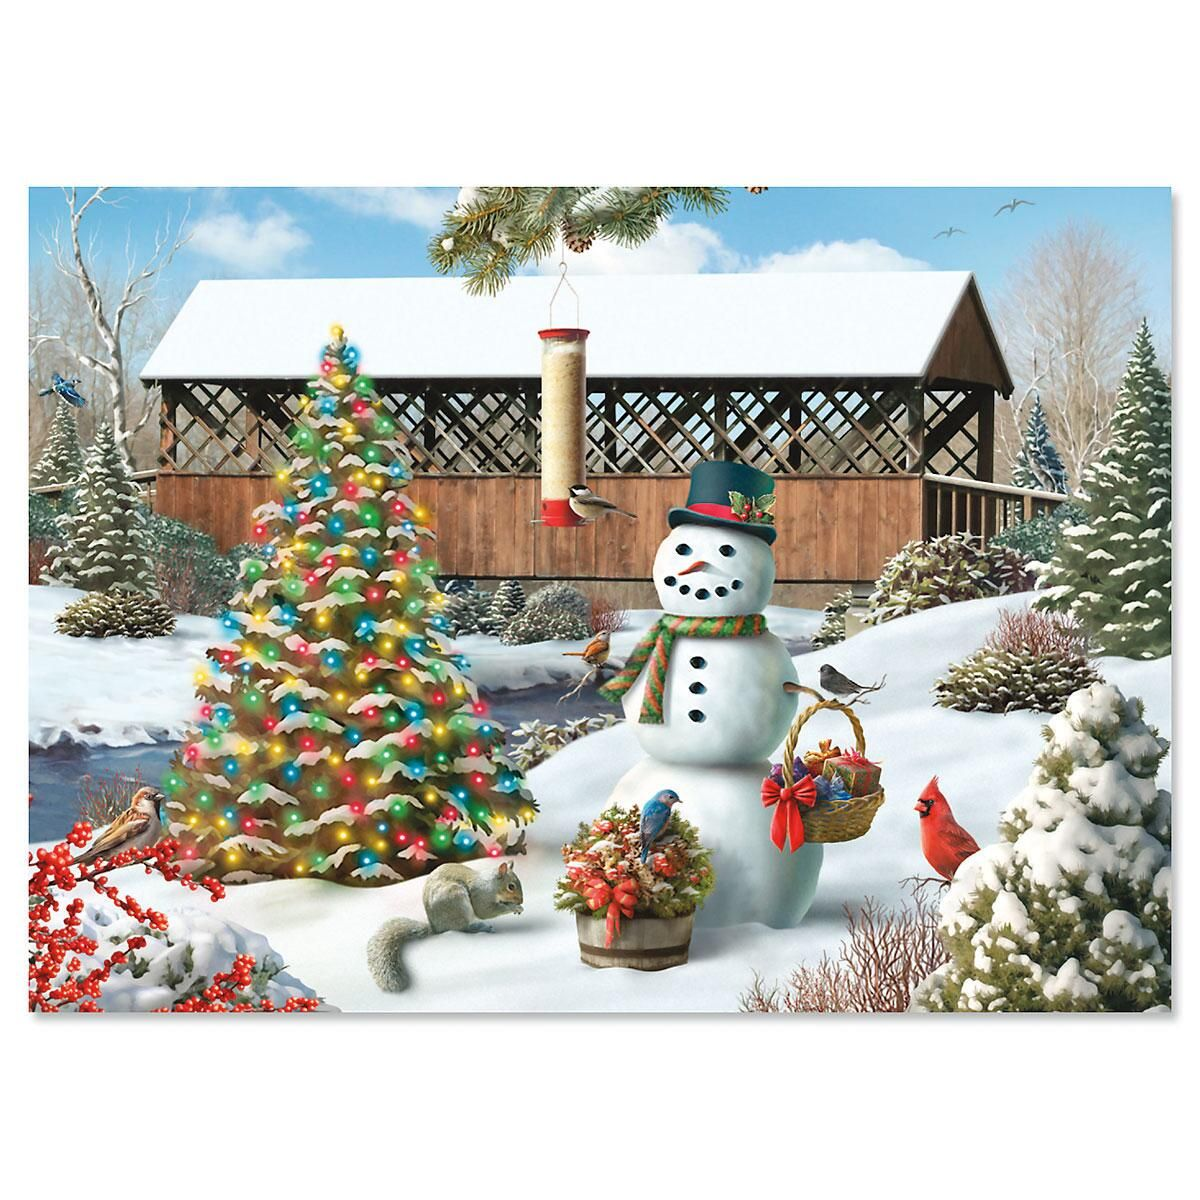 Countryside Nonpersonalized Christmas Cards - Set of 18